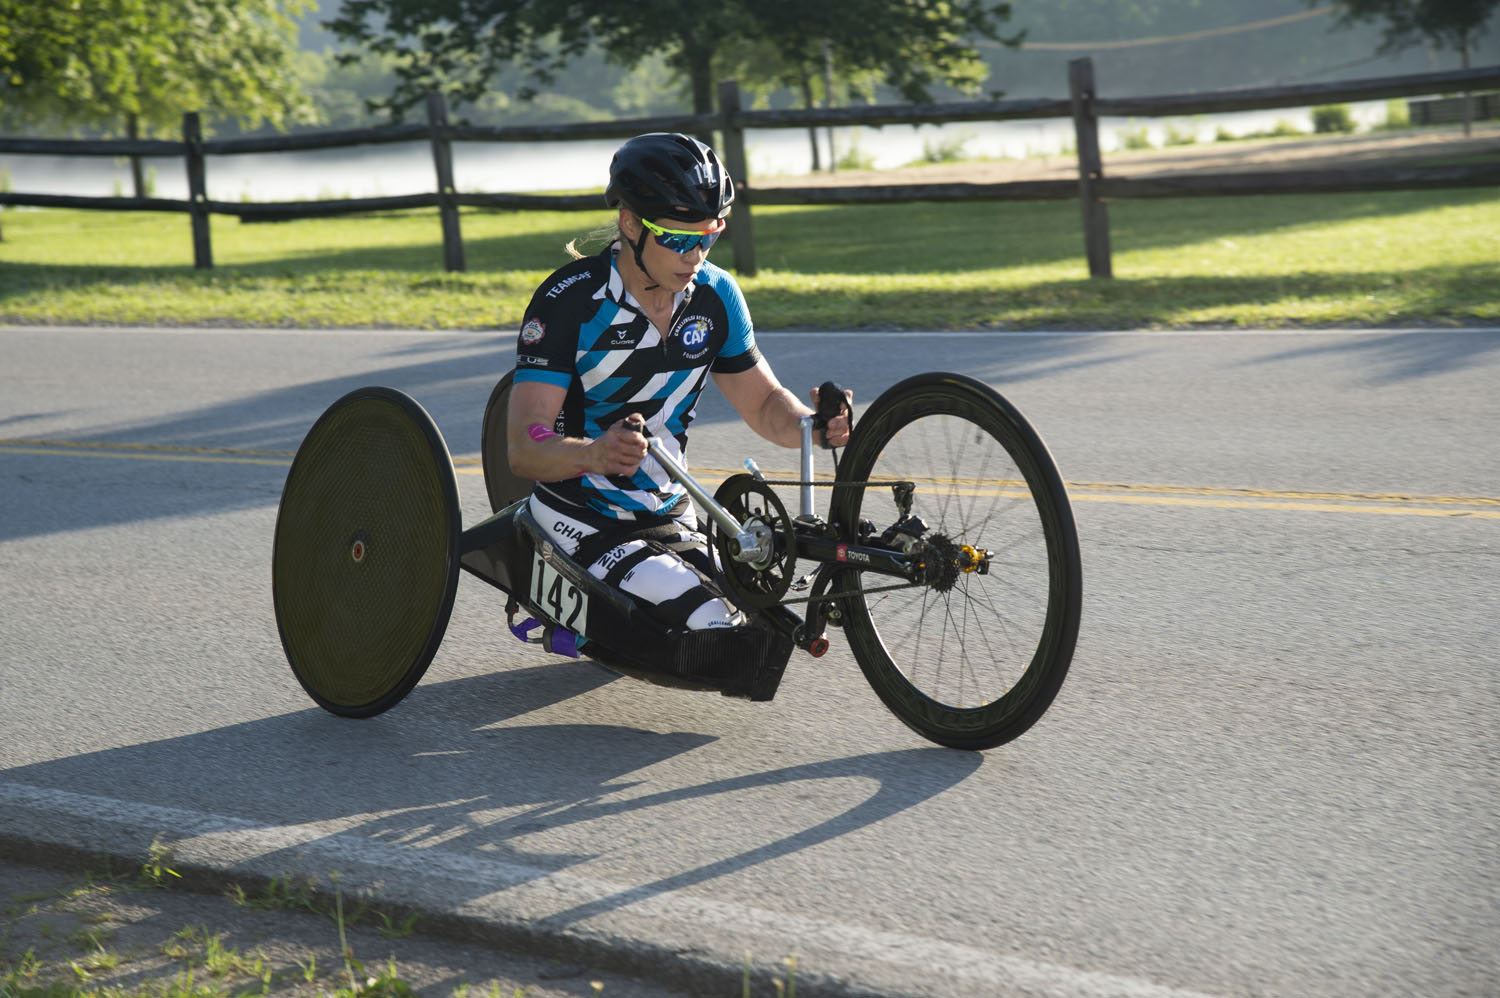 US Paracycling National Championships, Time Trial